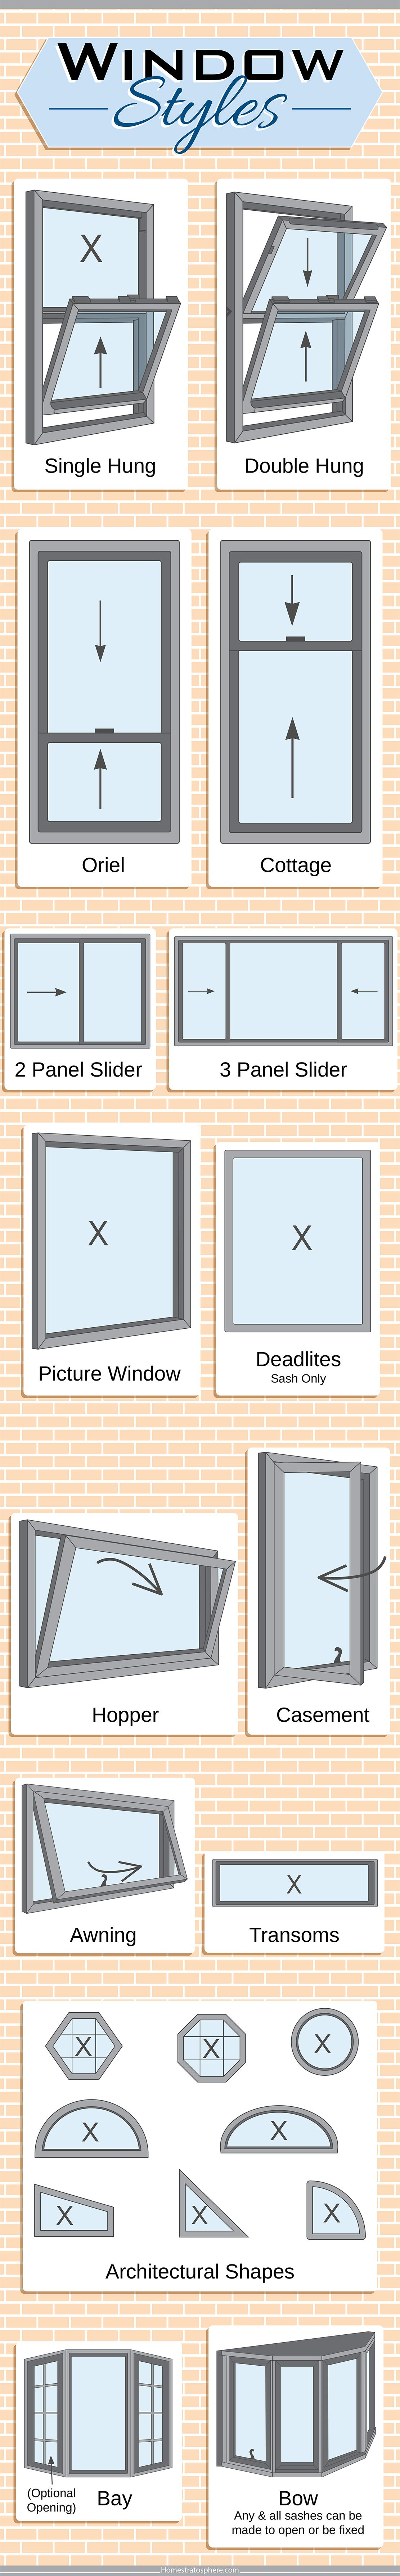 27 Different Types Of Windows Diagrams Window Styles Window